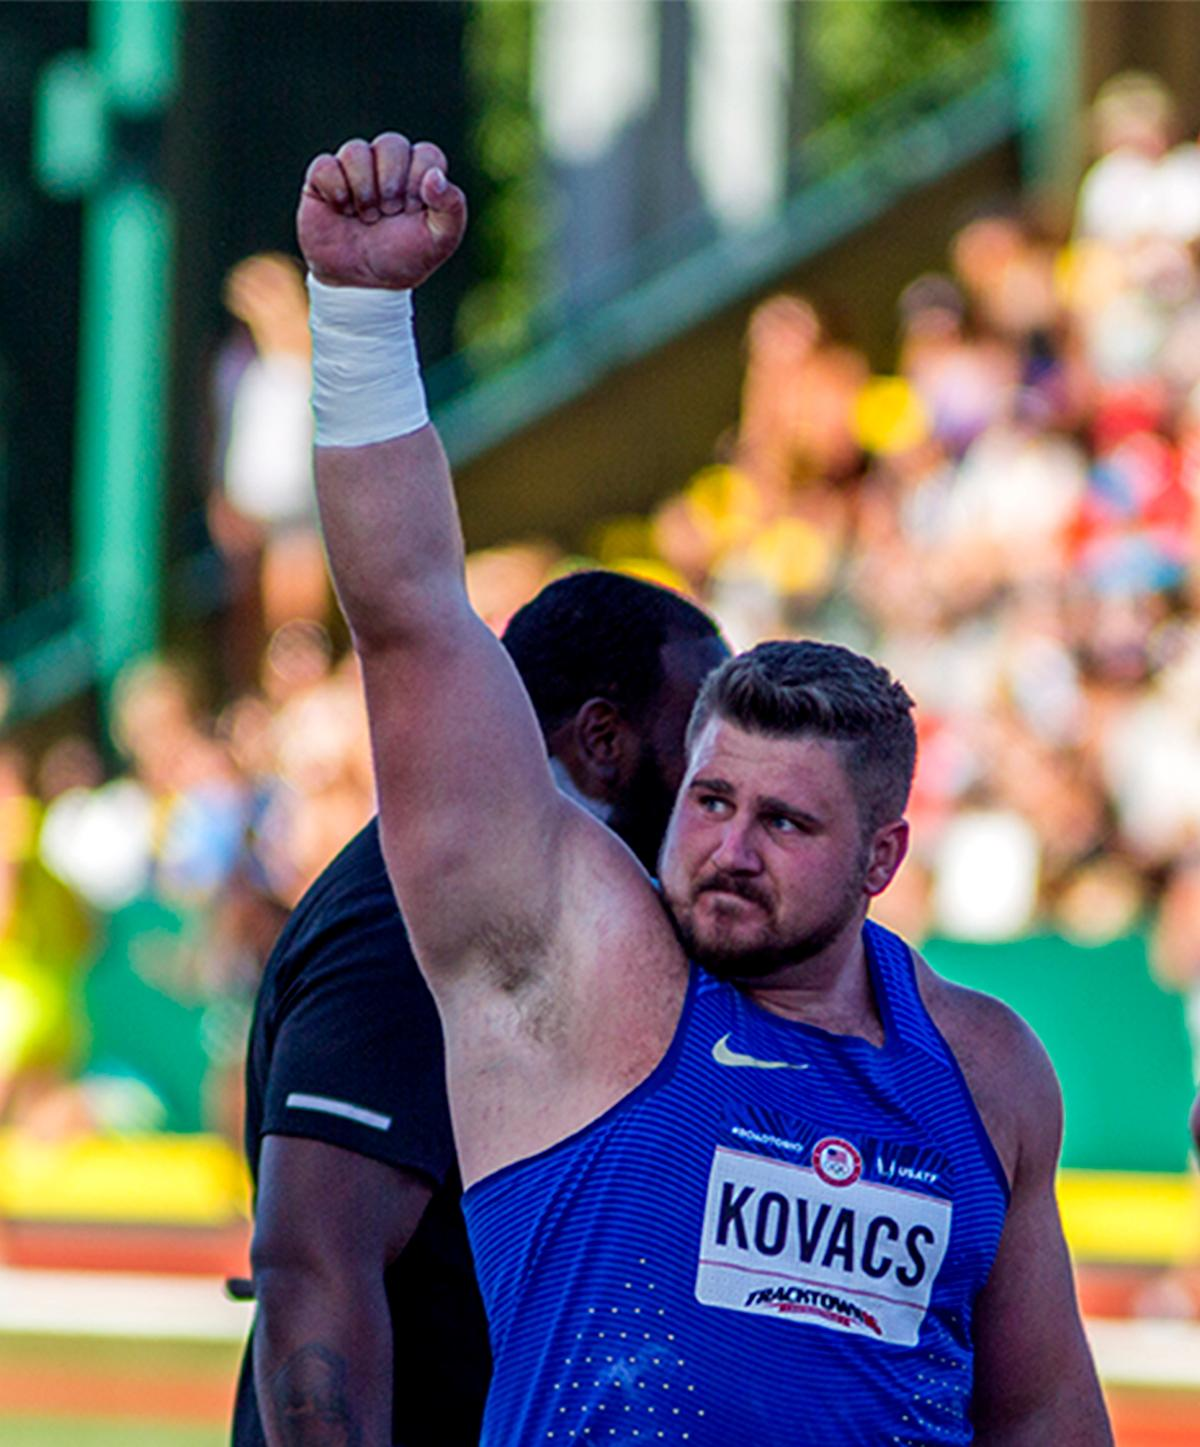 Nike's Joe Kovacs celebrates placing second in the mens shot put competition. Kovacs placed second with a final distance of 20.75m. Day one of the U.S. Olympic Trials Track and Field began on Friday at Hayward Field in Eugene, Oregon and will continue through July 10. Photo by August Frank, Oregon News Lab